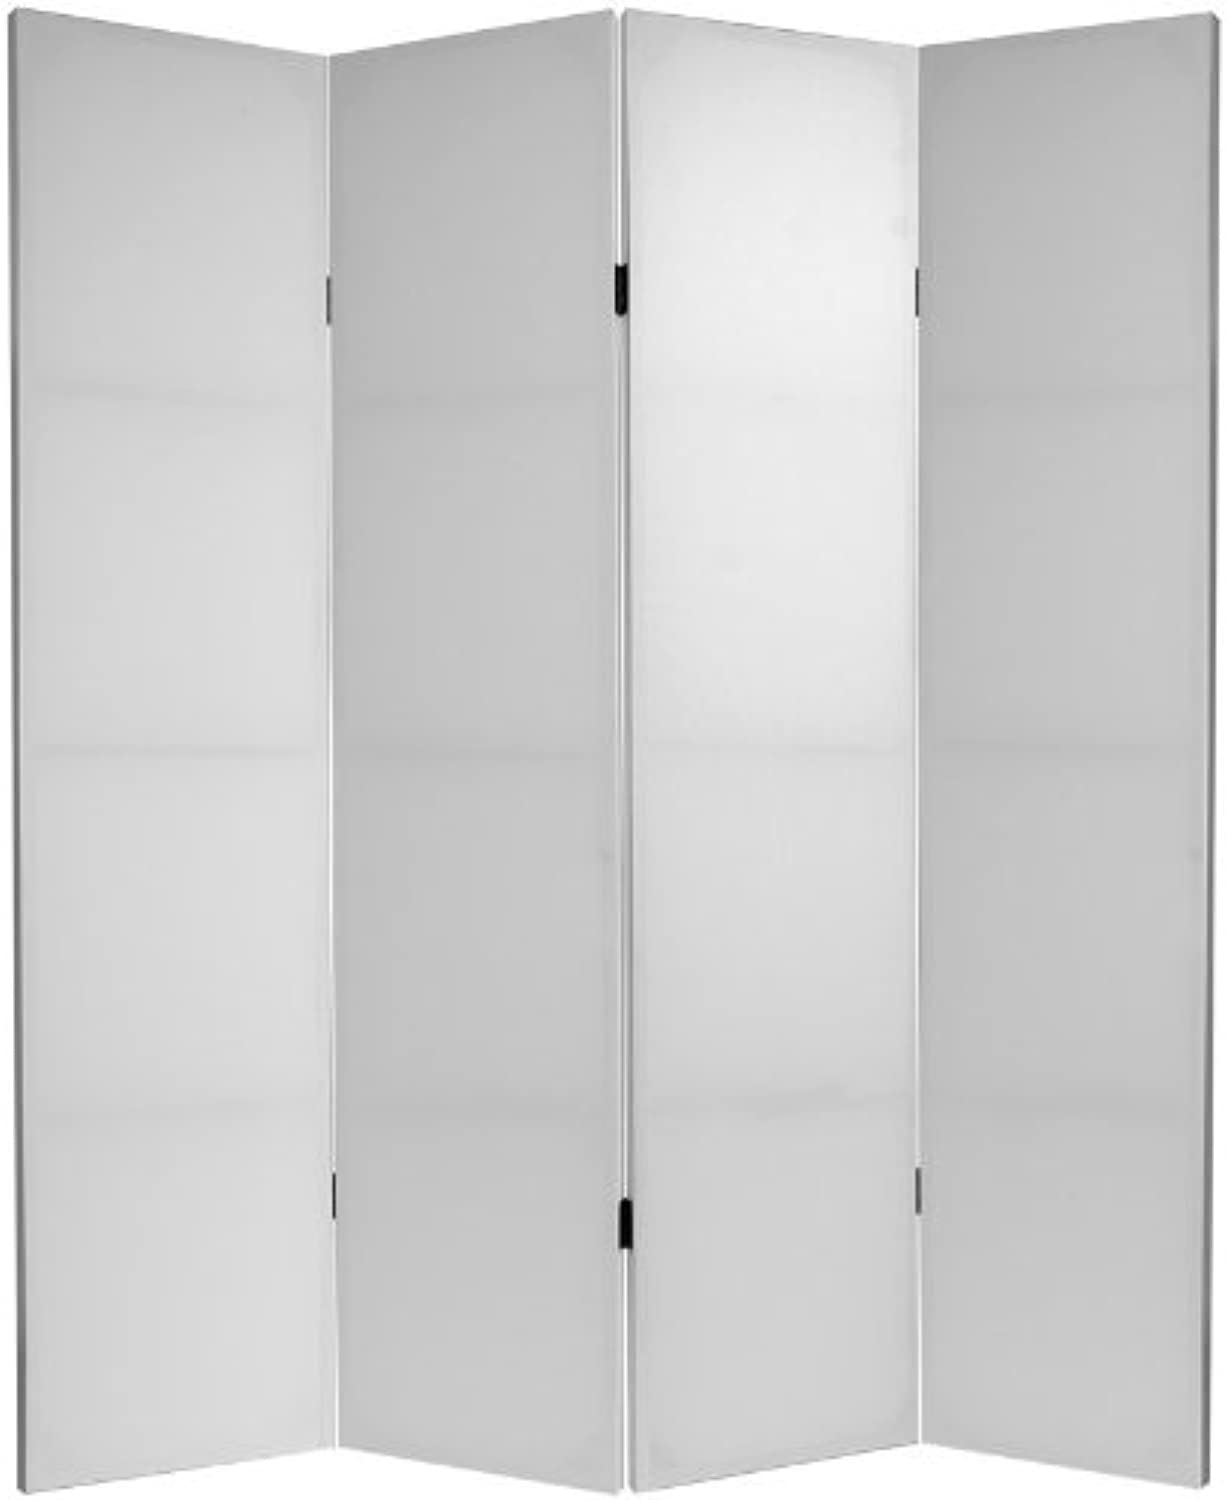 Oriental Furniture Simple Low Cost Light Sturdy Screen, 6-Feet Tall DIY Plain White Canvas Room Divider Folding Partition- 4 Panel